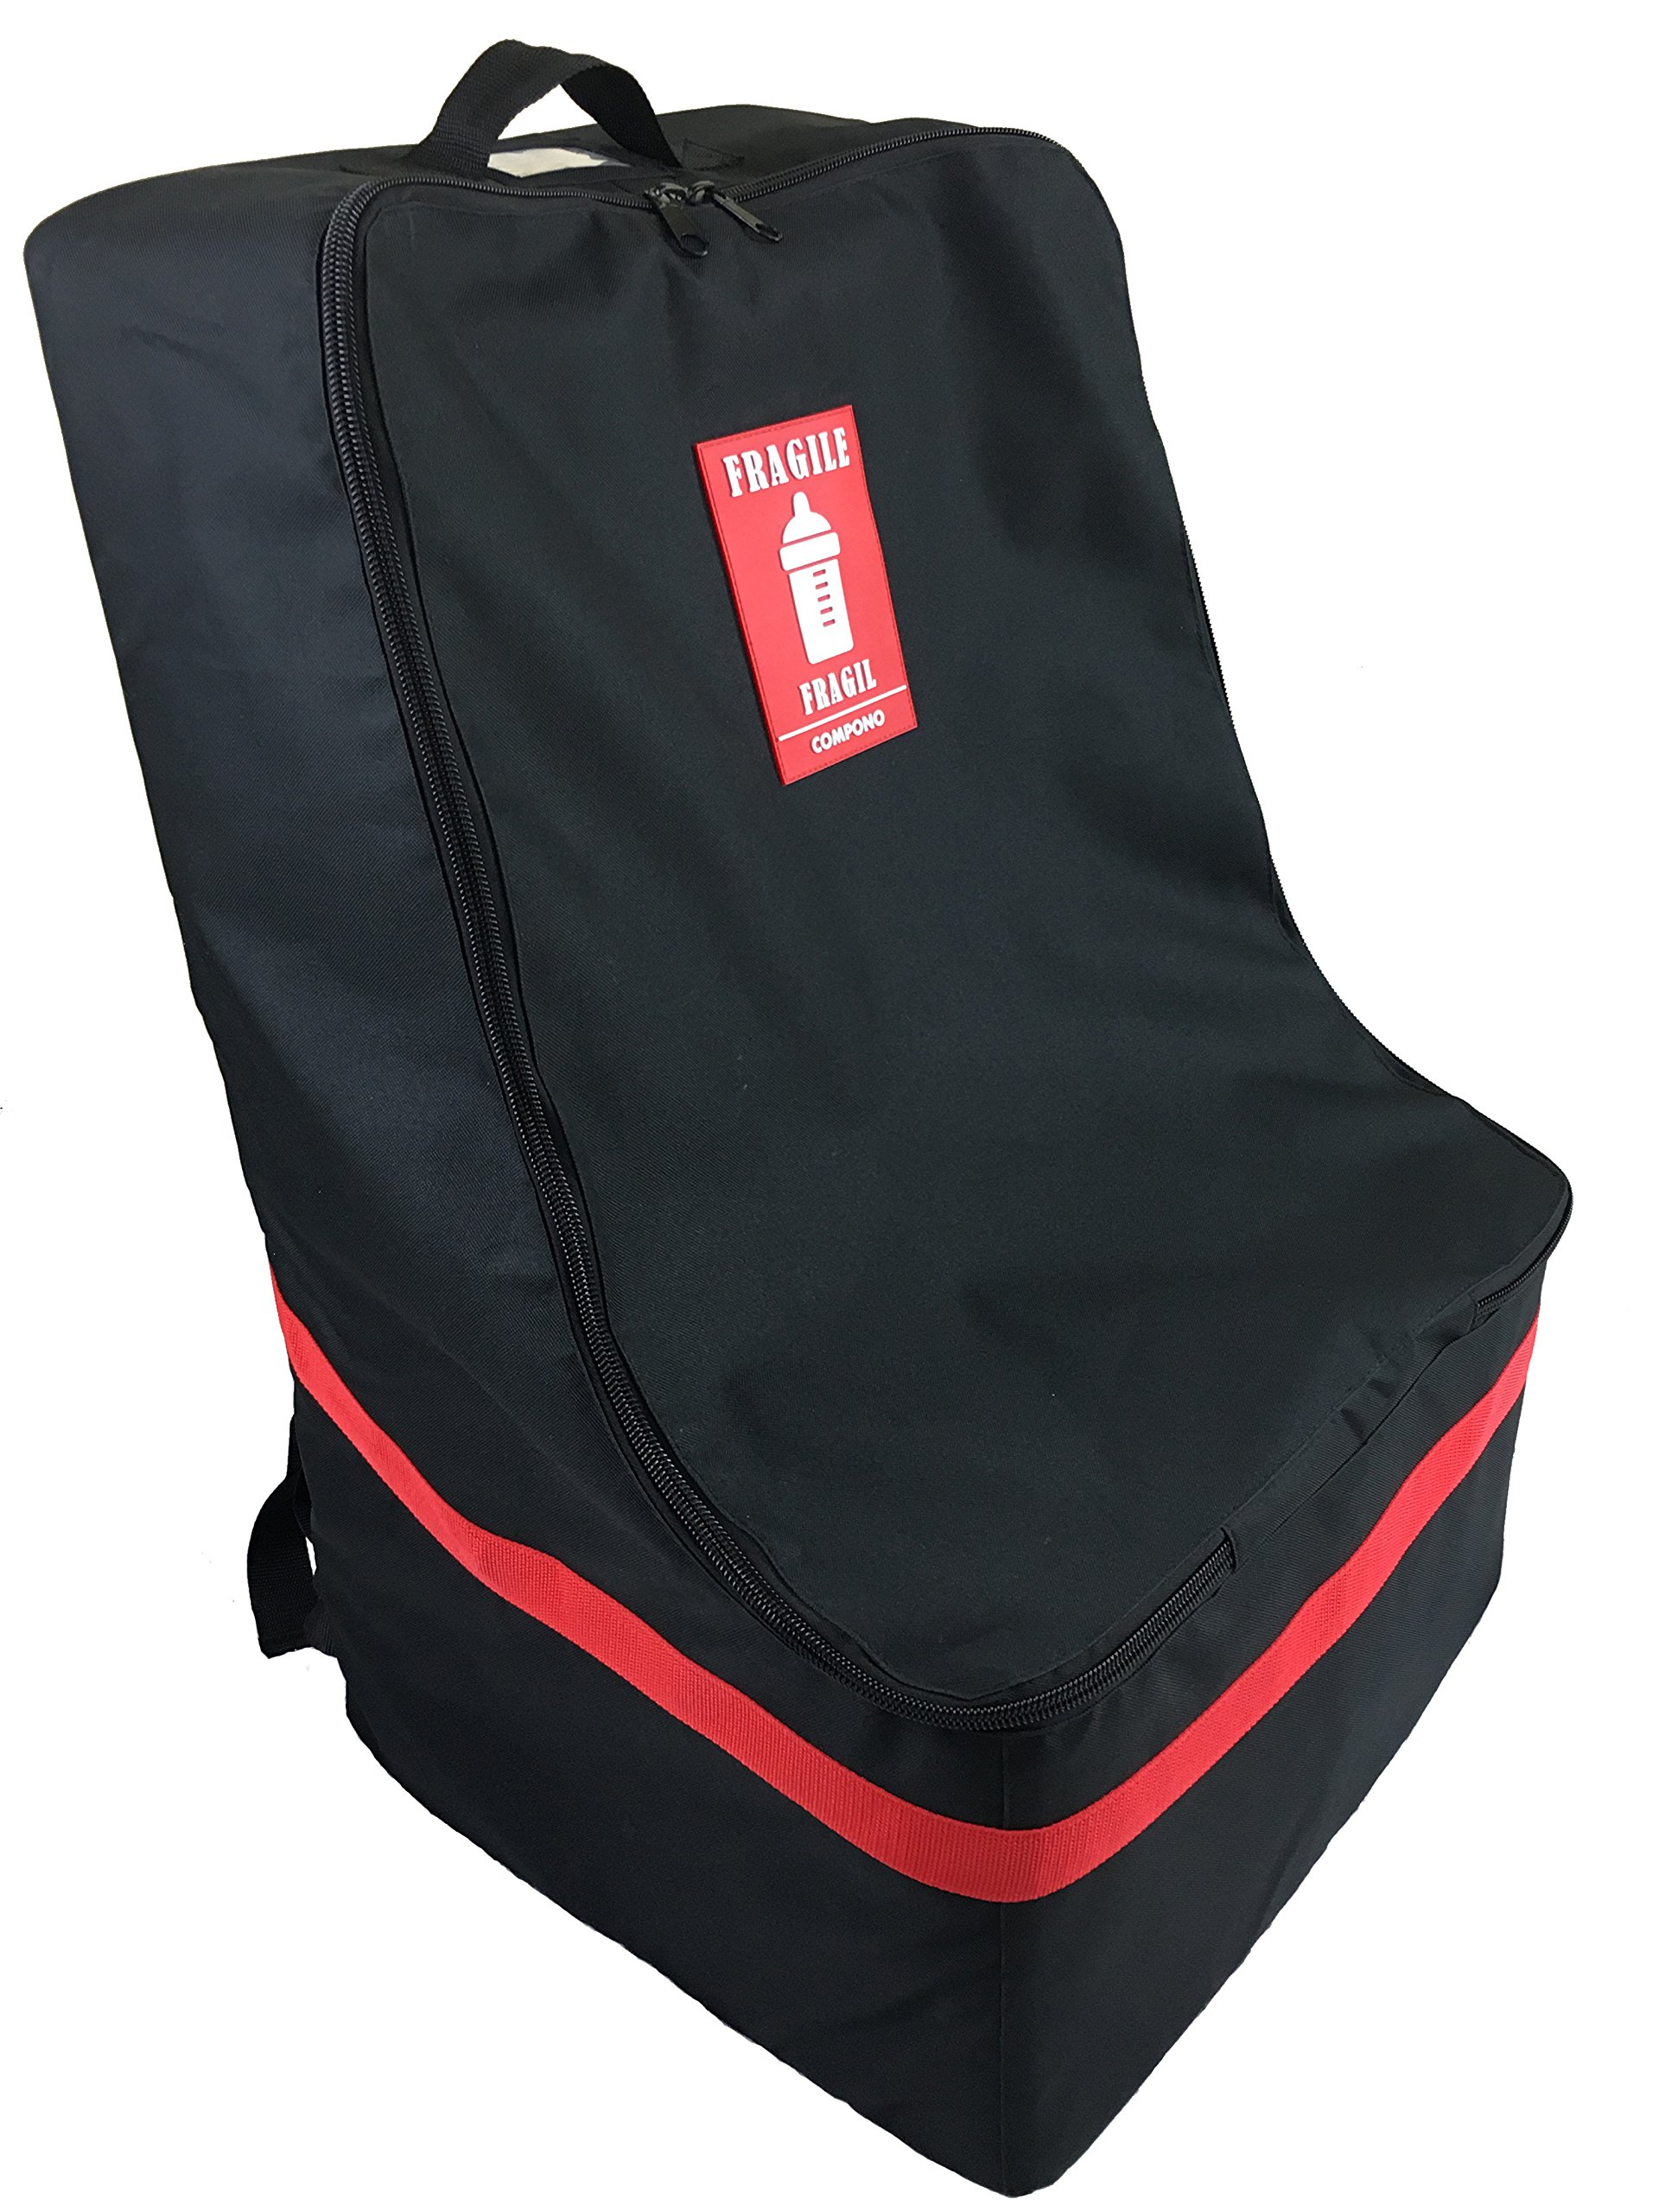 Car Seat Travel Bag - Padded Car Seat Bag Backpack COMPONO (Black with Red Trim)